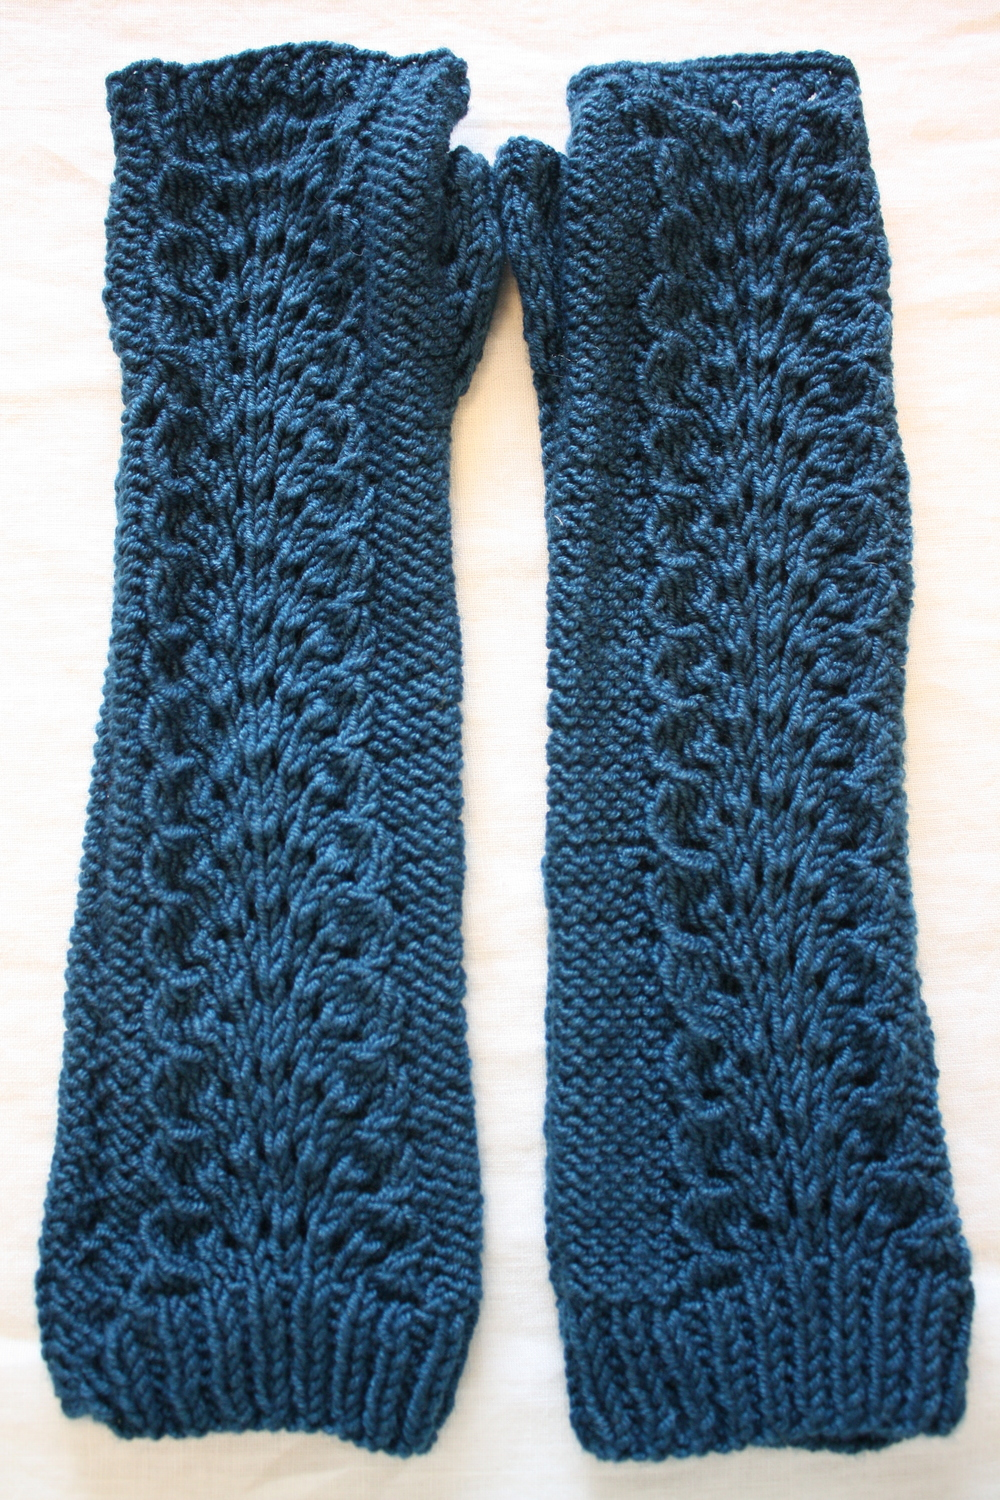 Lettuce Knit Arm Warmers Pattern, Stitch Nation by Debbie Stoller